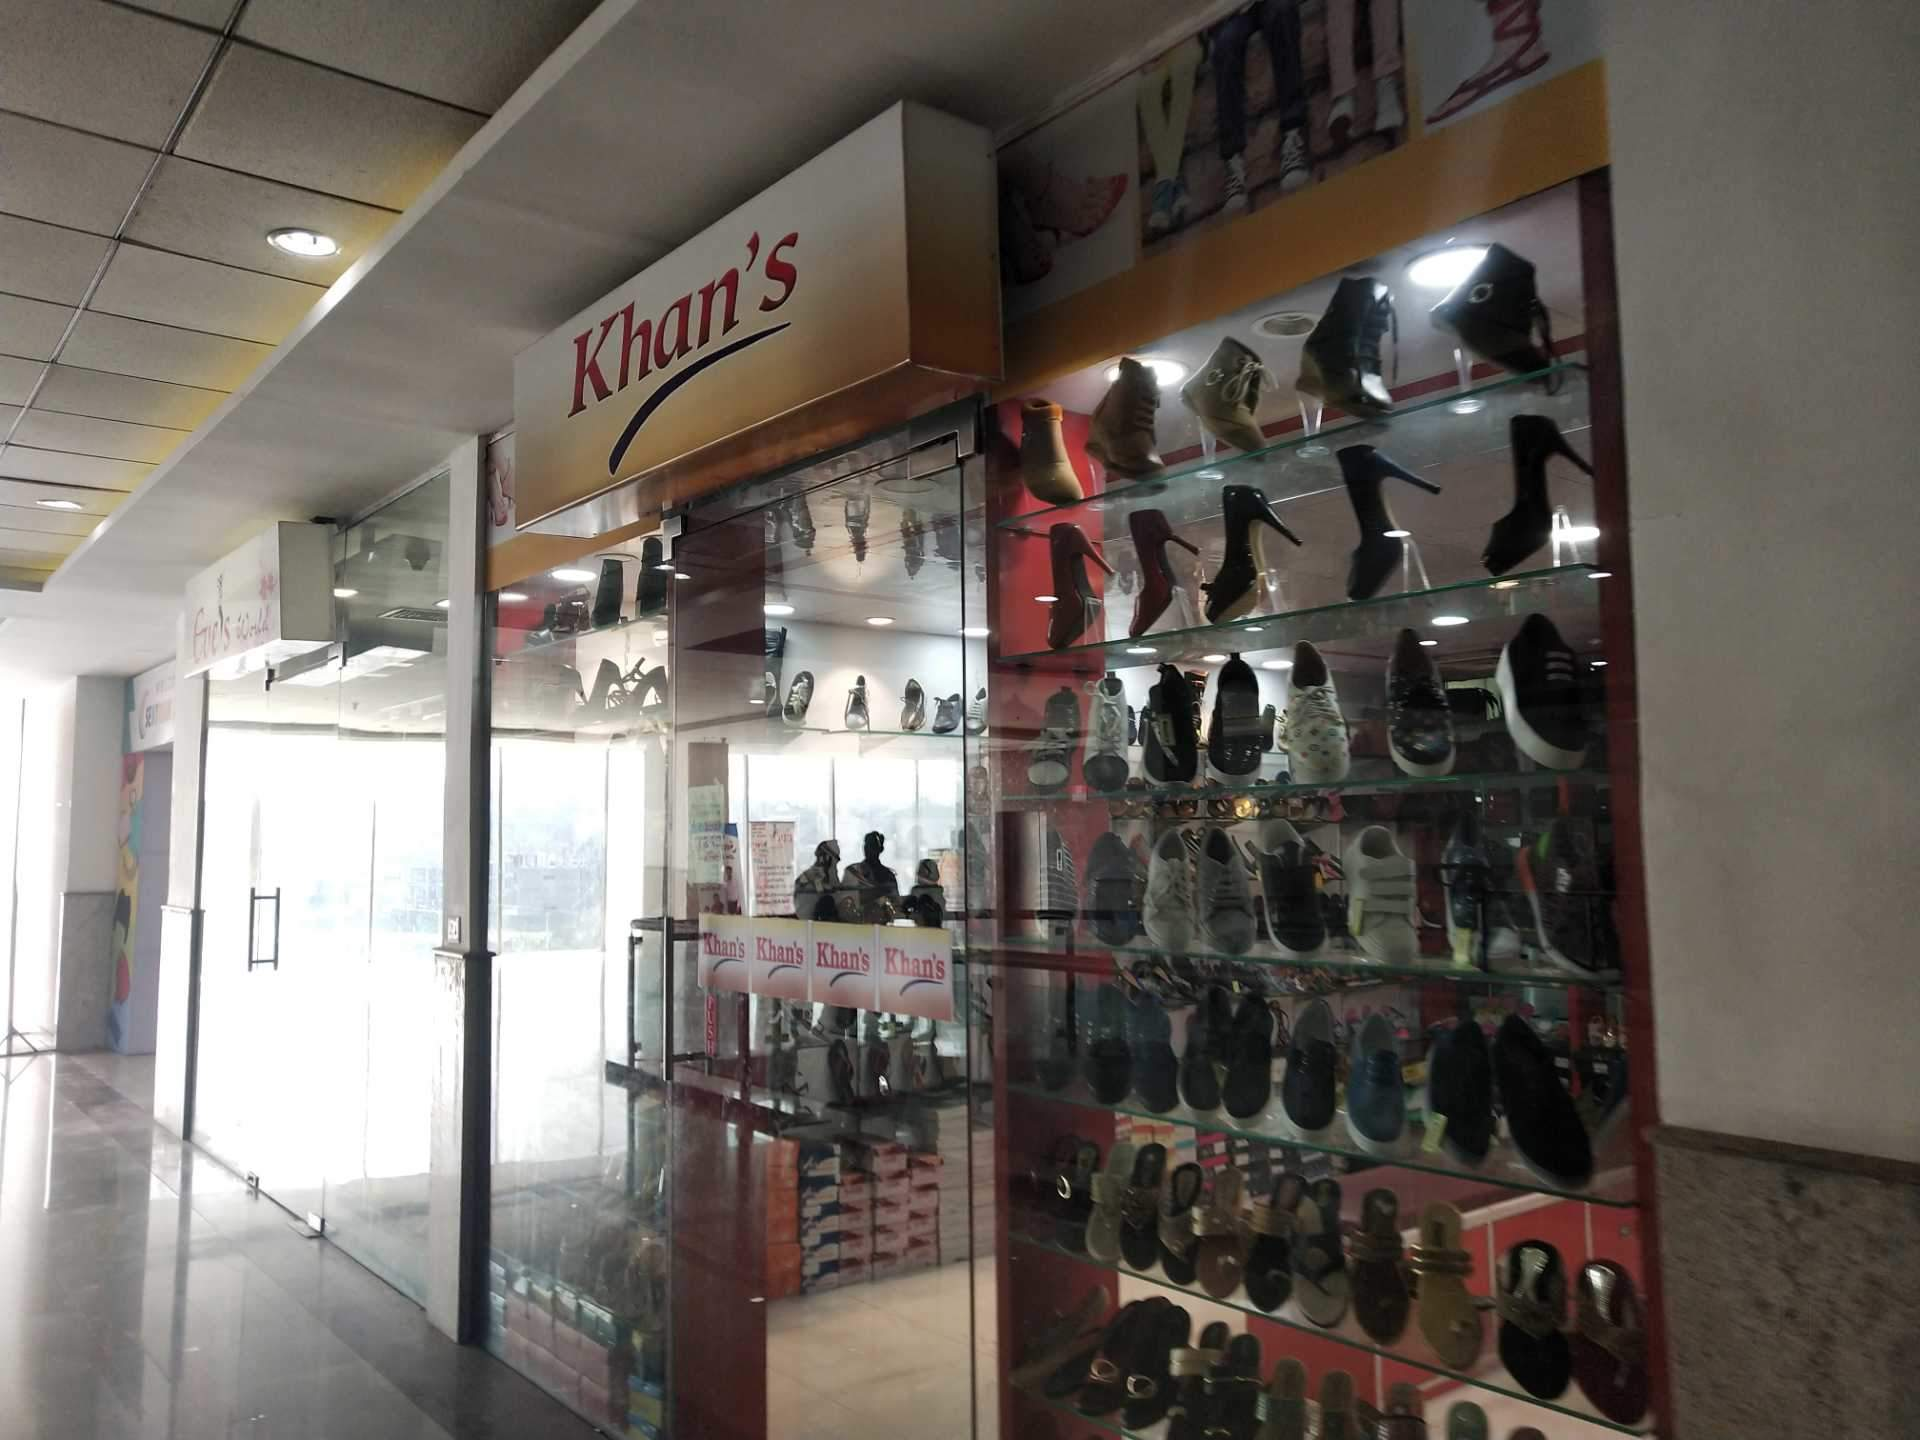 Khan S Sentrum Mall Ramkrishna Mission Shoe Dealers In Asansol Justdial